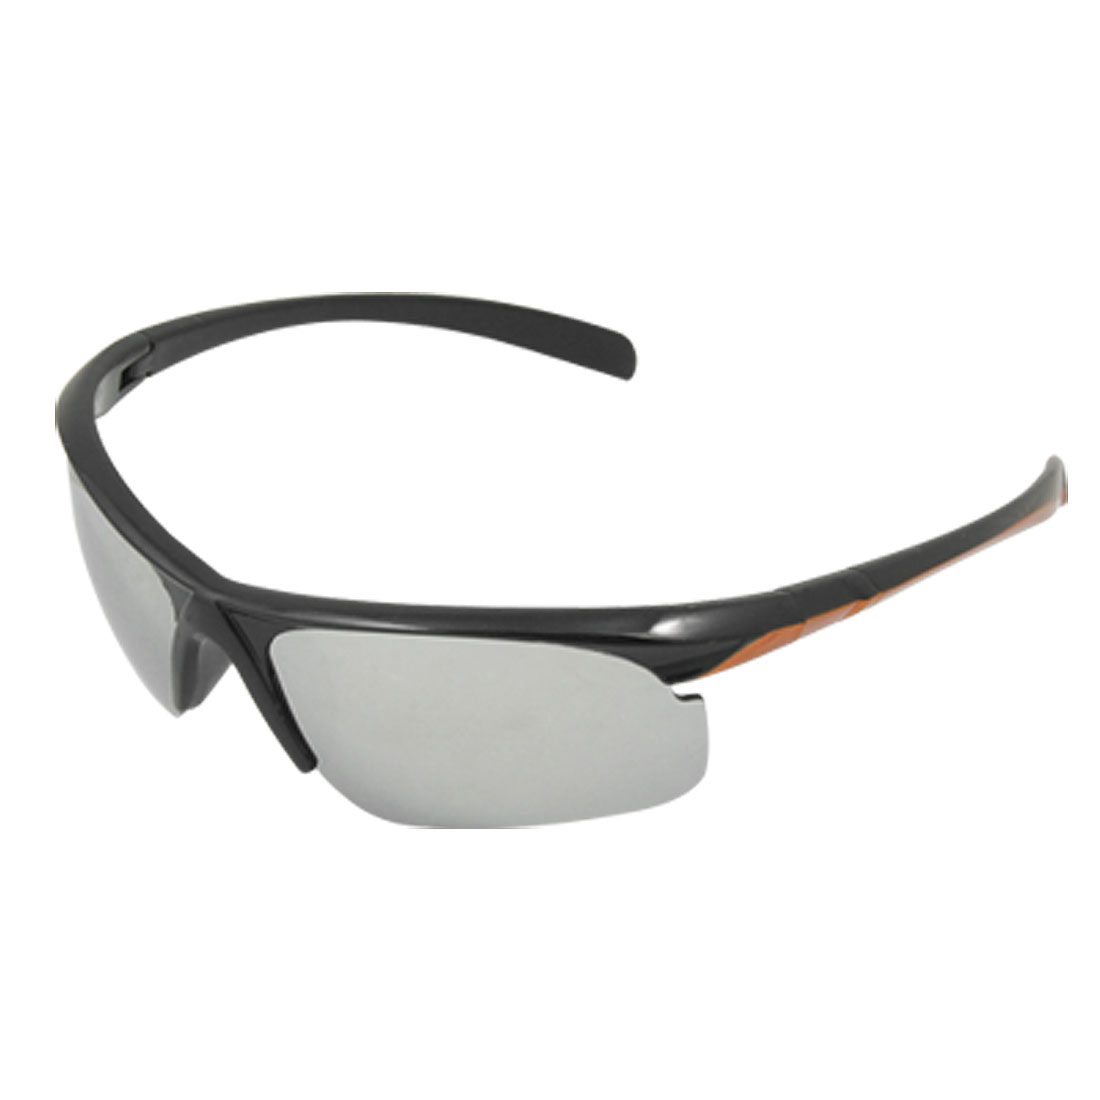 Mirror Lens Orange Detailing Arm Semi Rim Sports Sunglasses